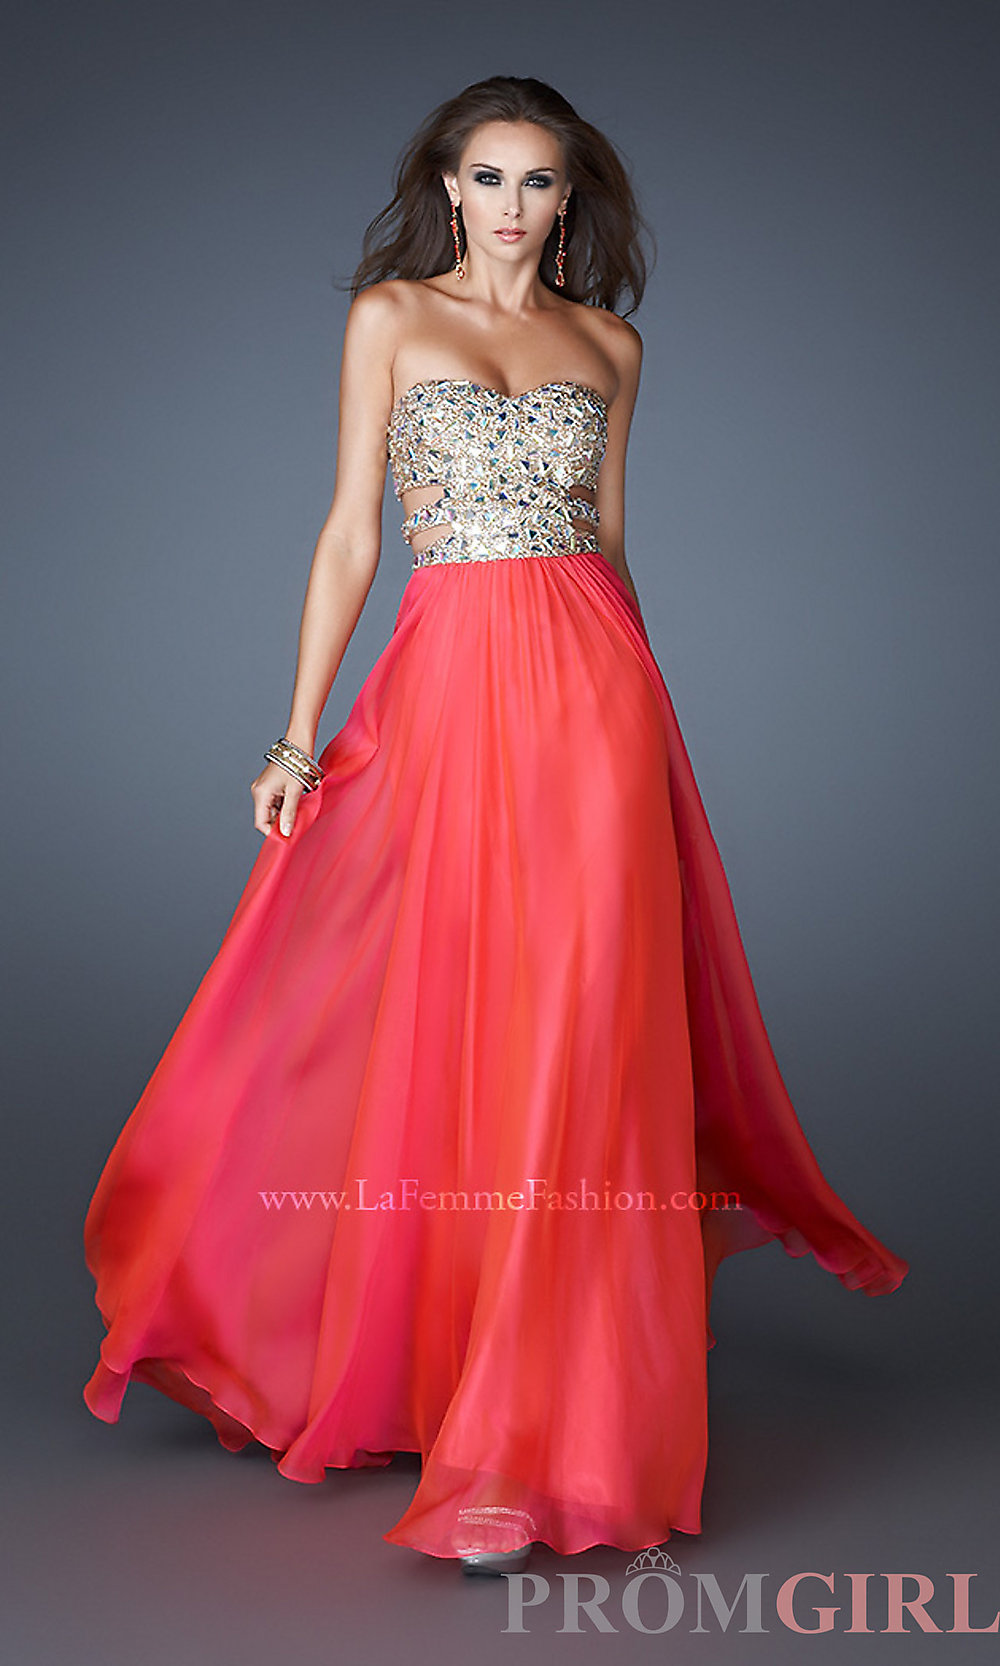 Latest Fancy Gowns, Prom and Cocktail dresses for Weddings and Parties 2014-2015 (17)